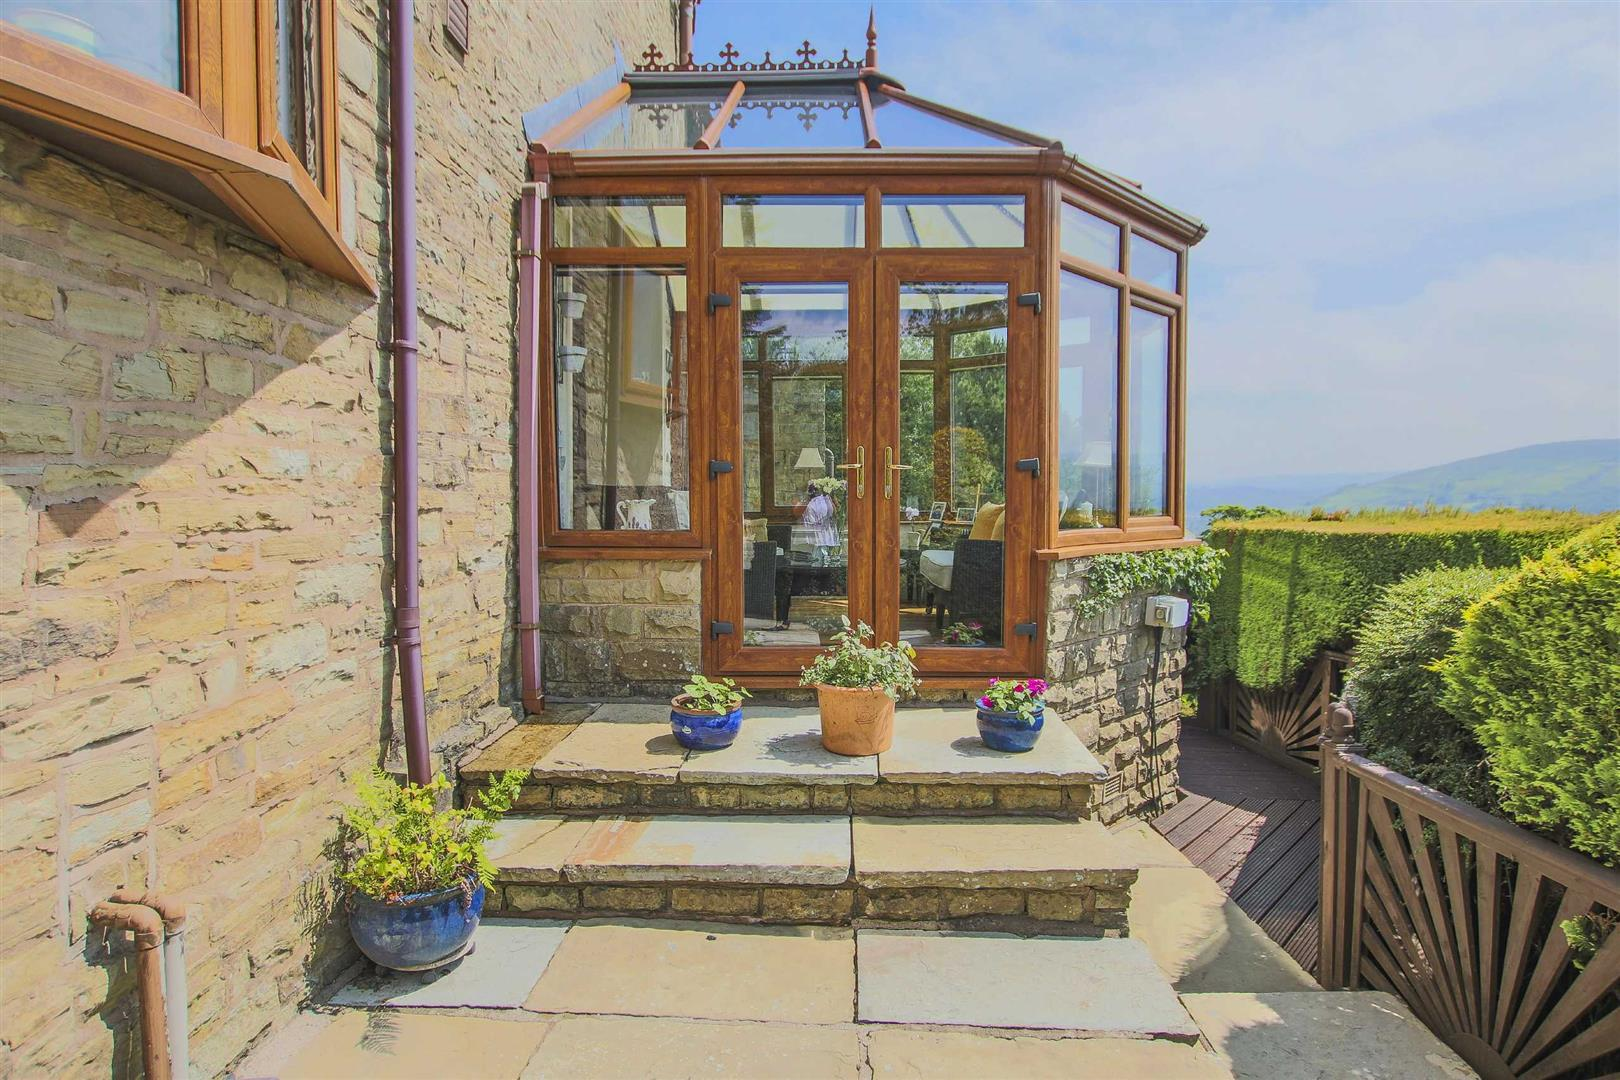 4 Bedroom Barn Conversion For Sale - p033135_27.jpg